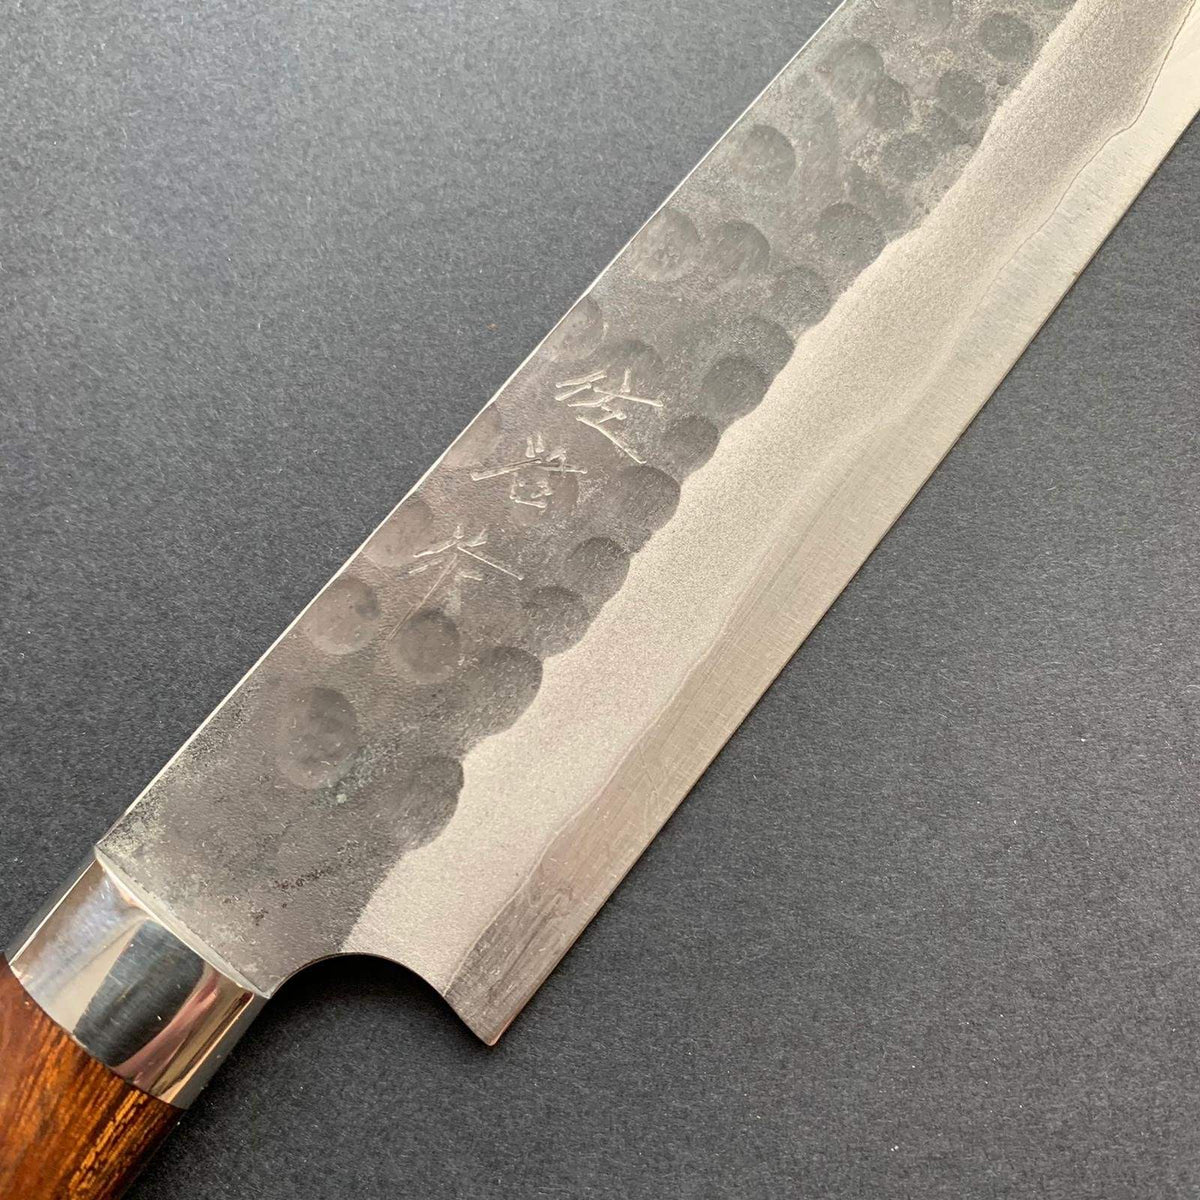 Sujihiki knife, Aogami Super carbon steel, Kurouchi and Tsuchime finish - Saji